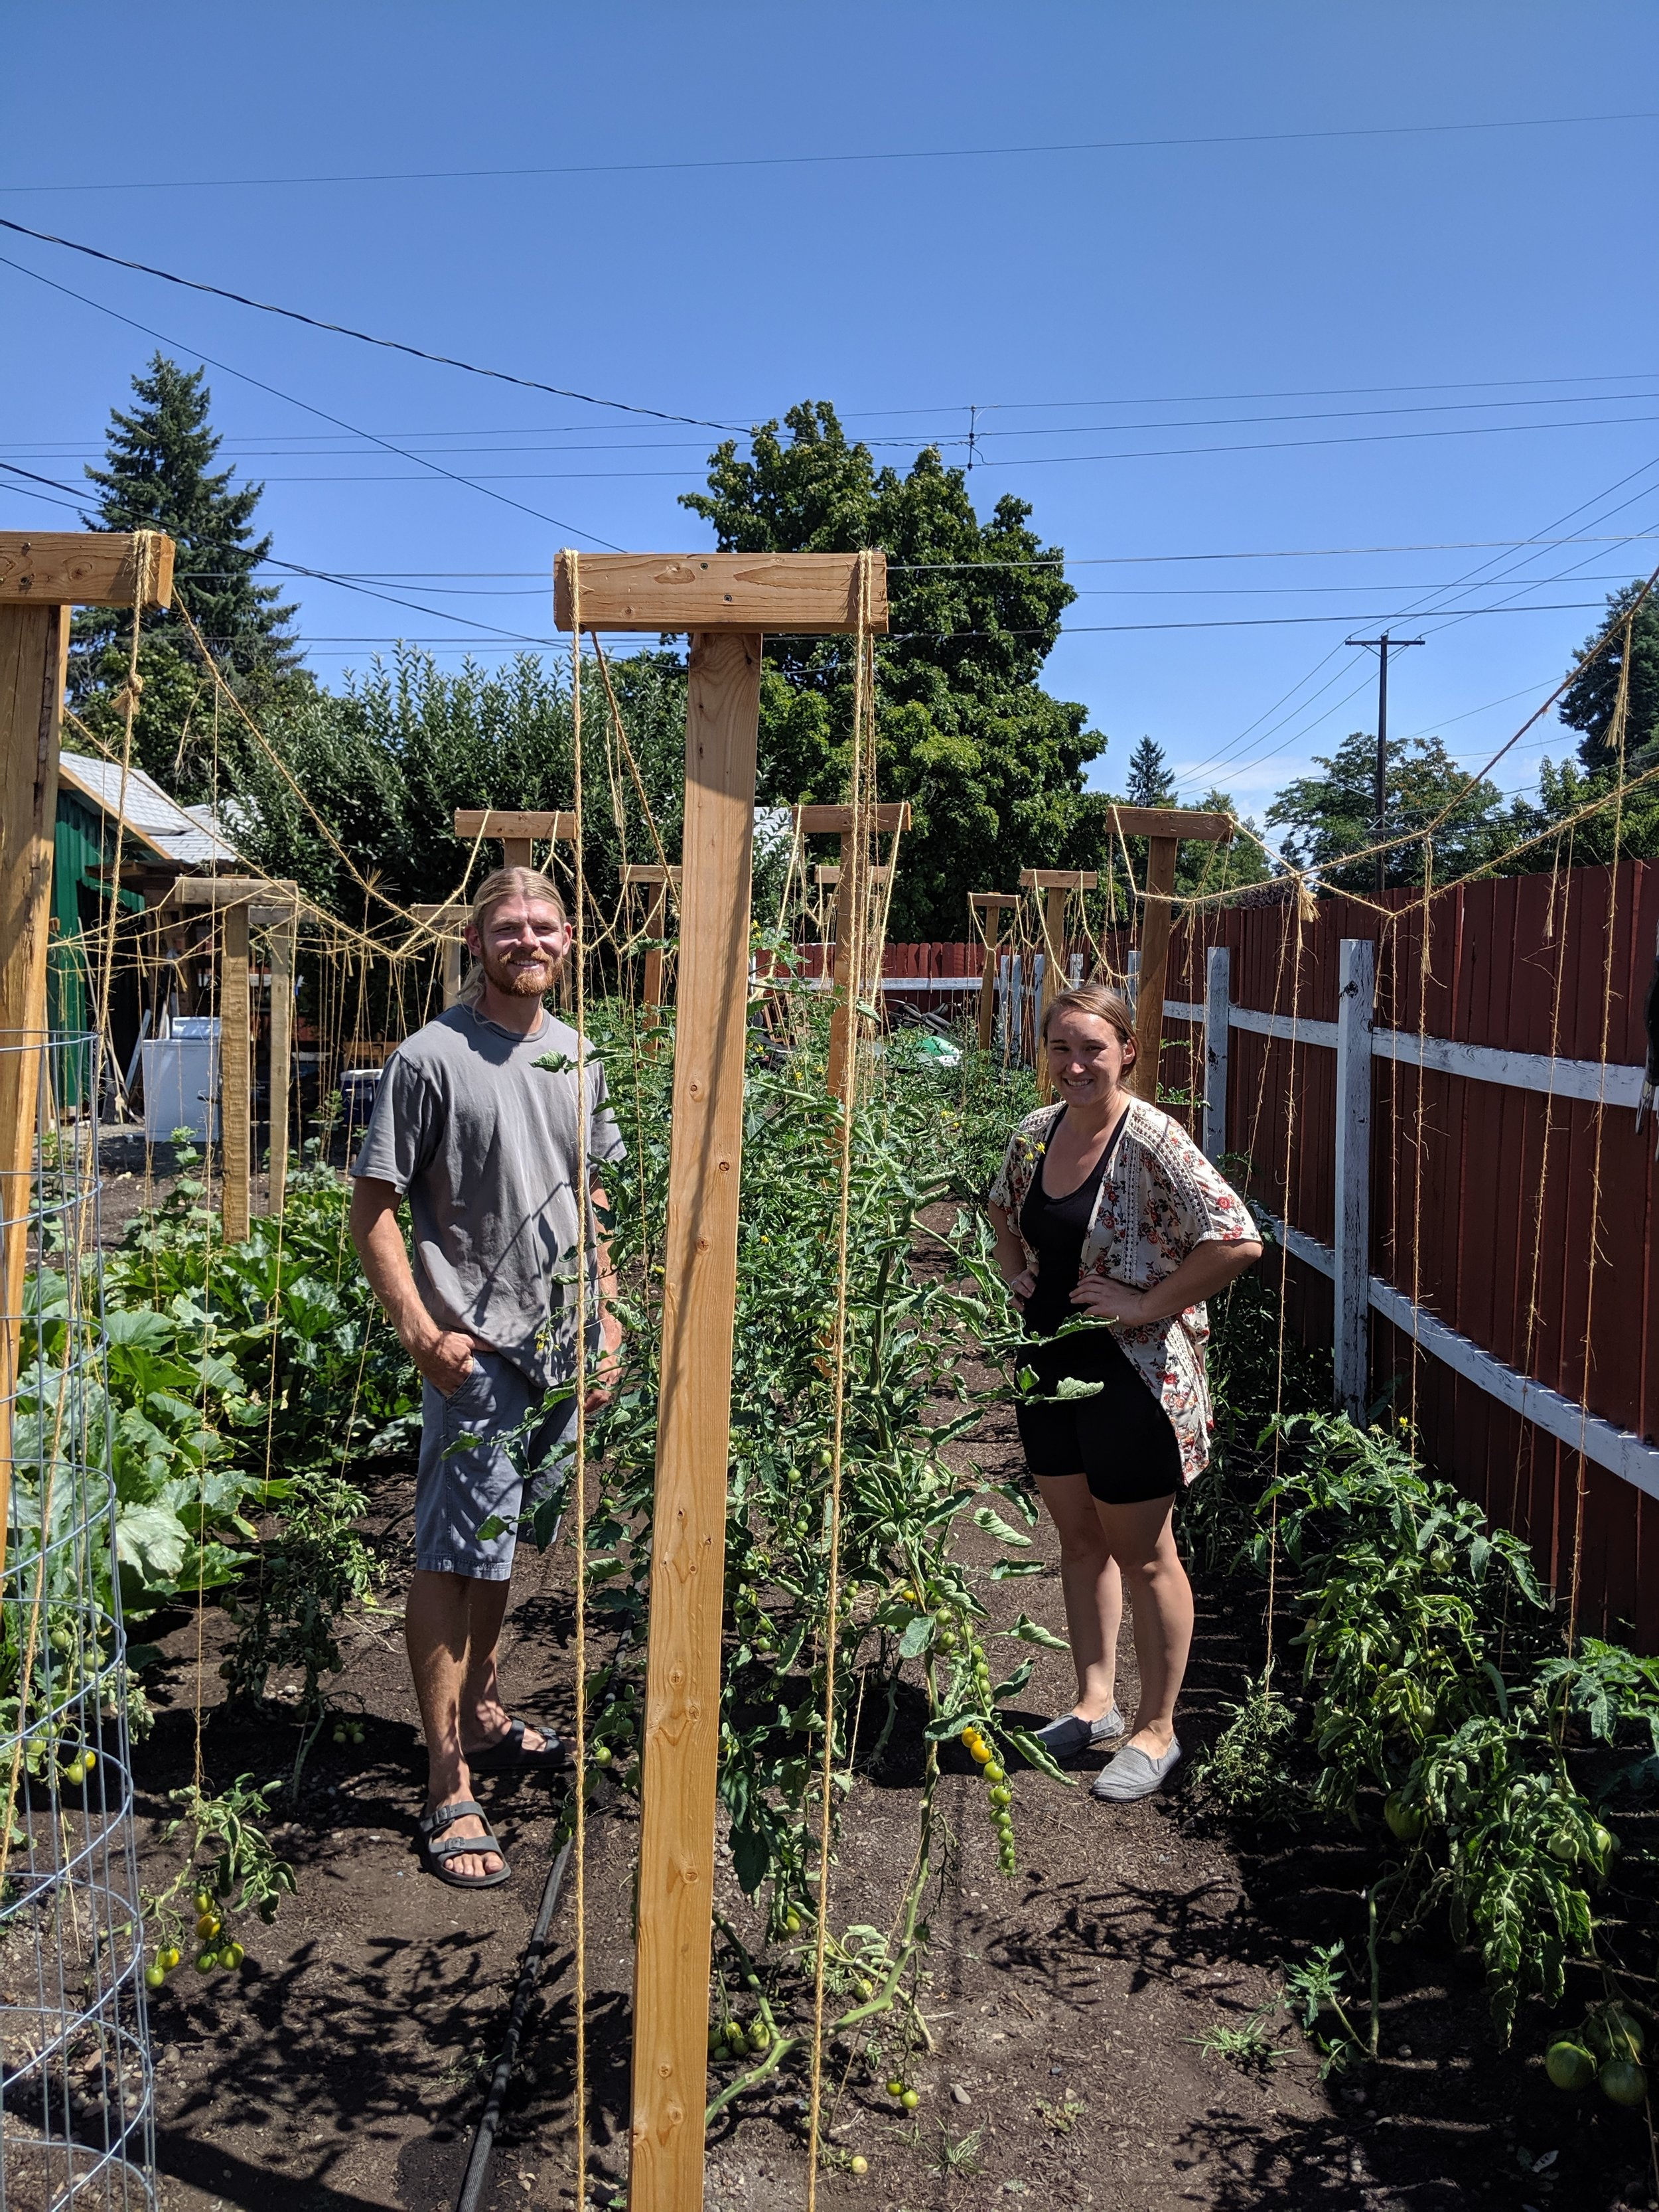 Phillip and Shaneese in their rows of tomatoes. Hanging tomatoes on a line makes picking easier and helps to keep away diseases like blight.